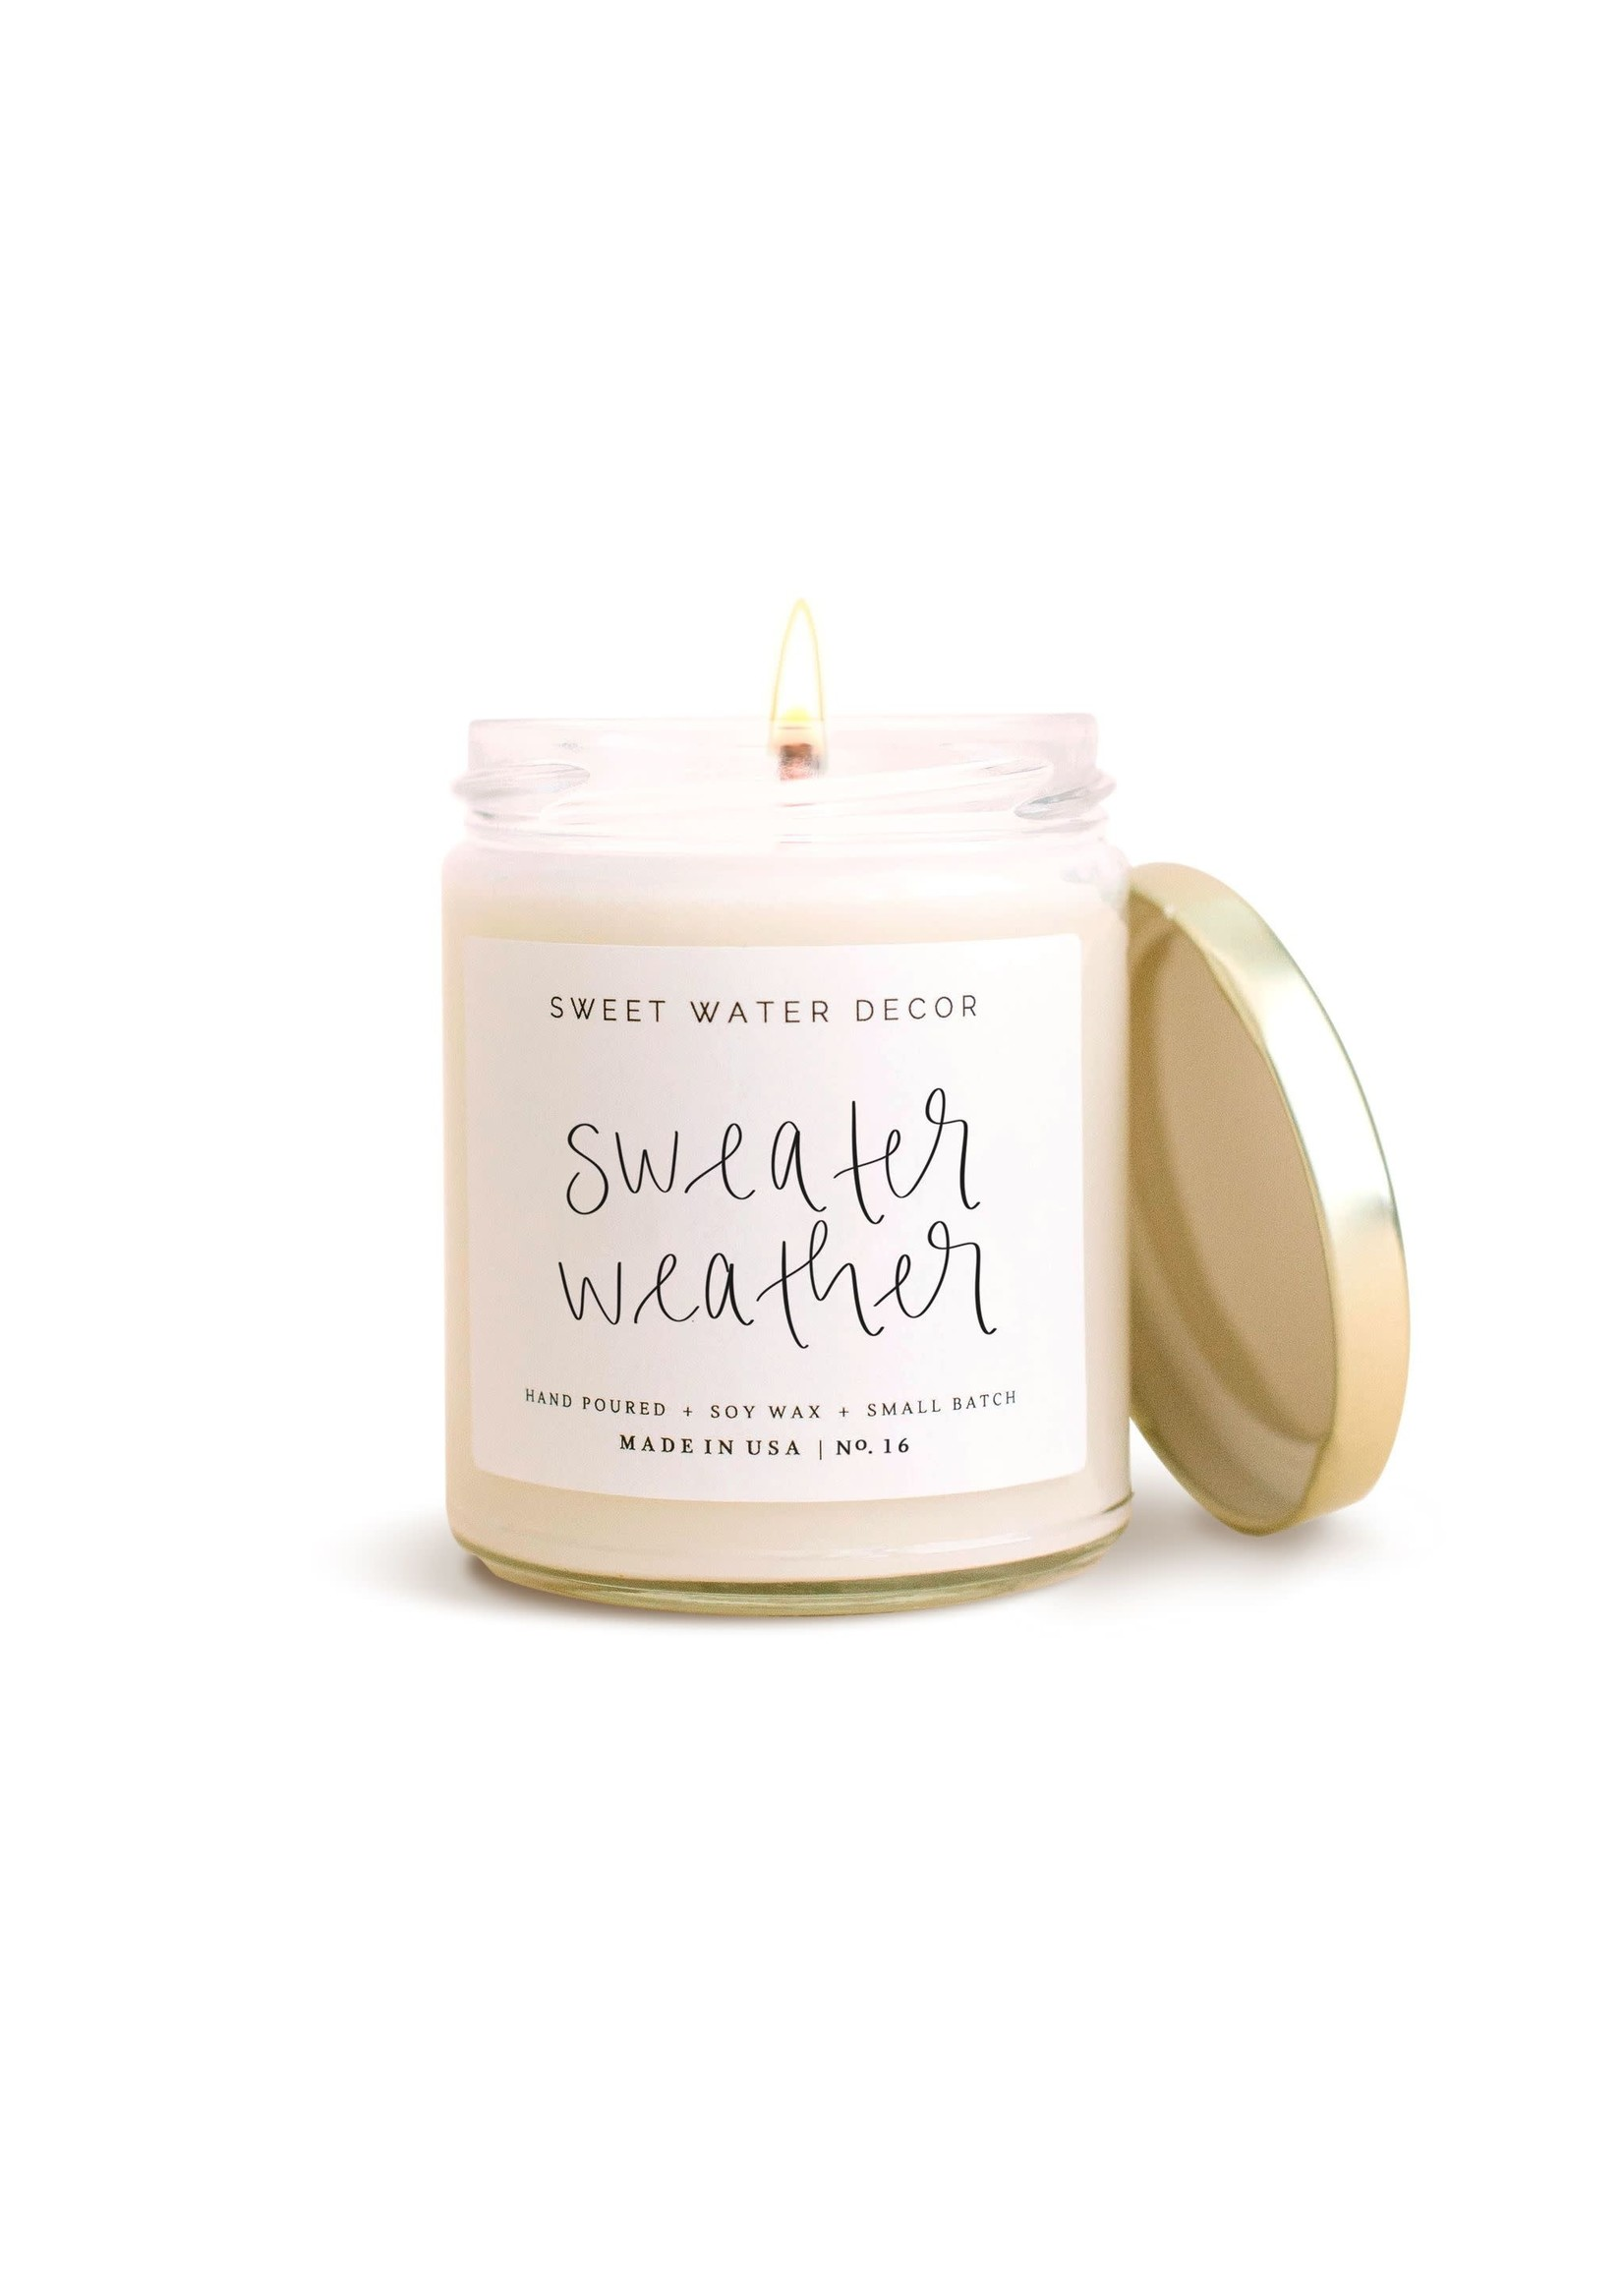 SWEET WATER DECOR 7.2OZ SOY CANDLES